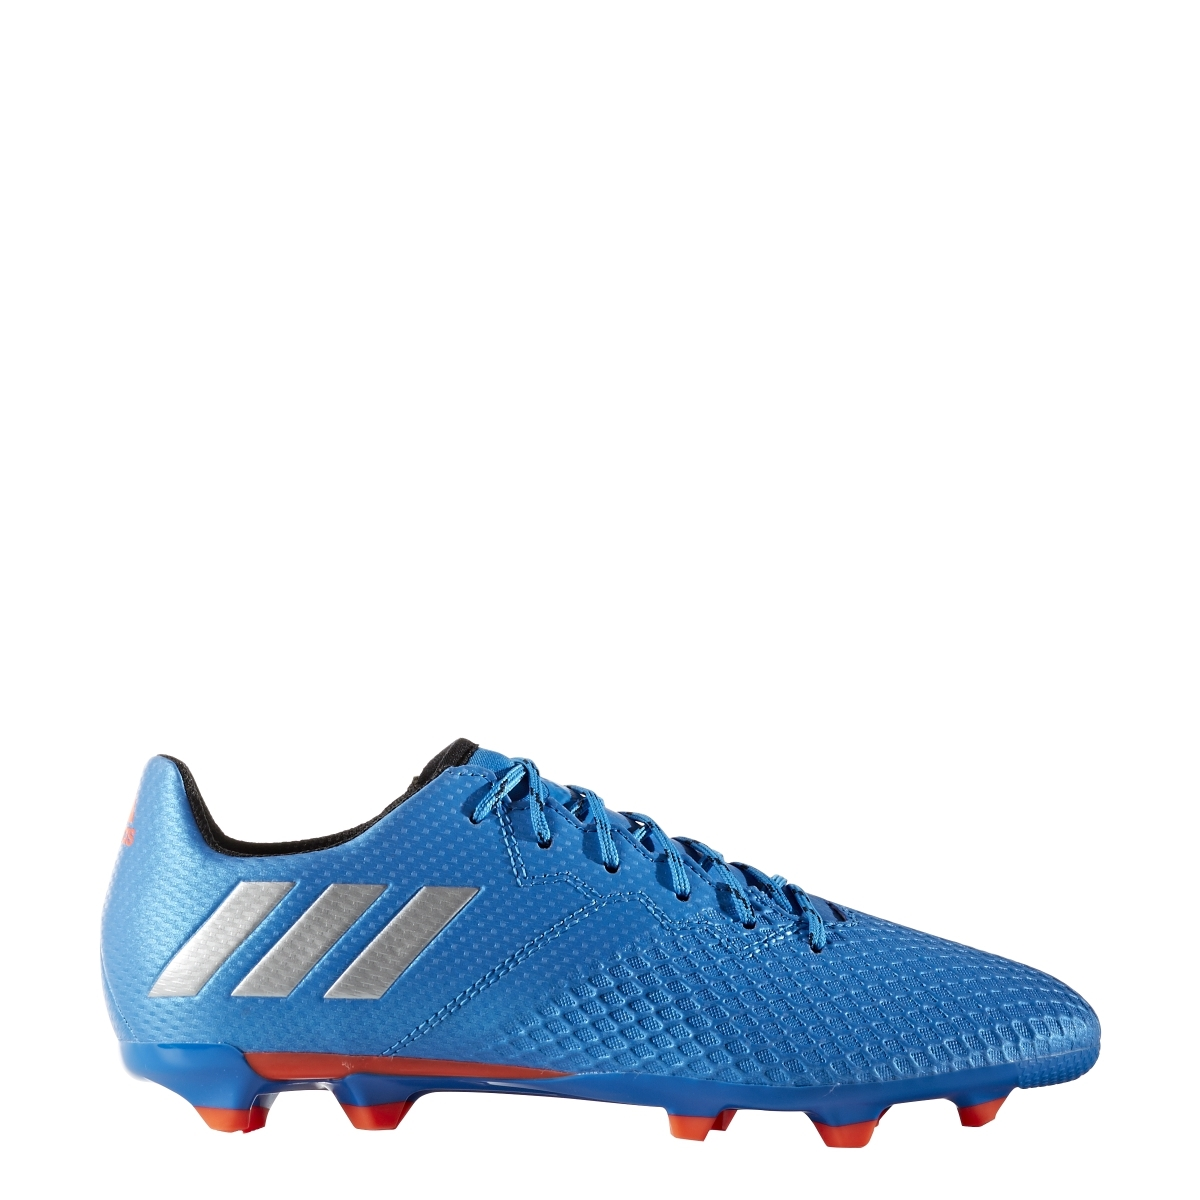 premium selection 3f5c1 d49f8 Adidas Messi 16.3 Youth FG Soccer Cleats (Shock Blue Silver Metallic)